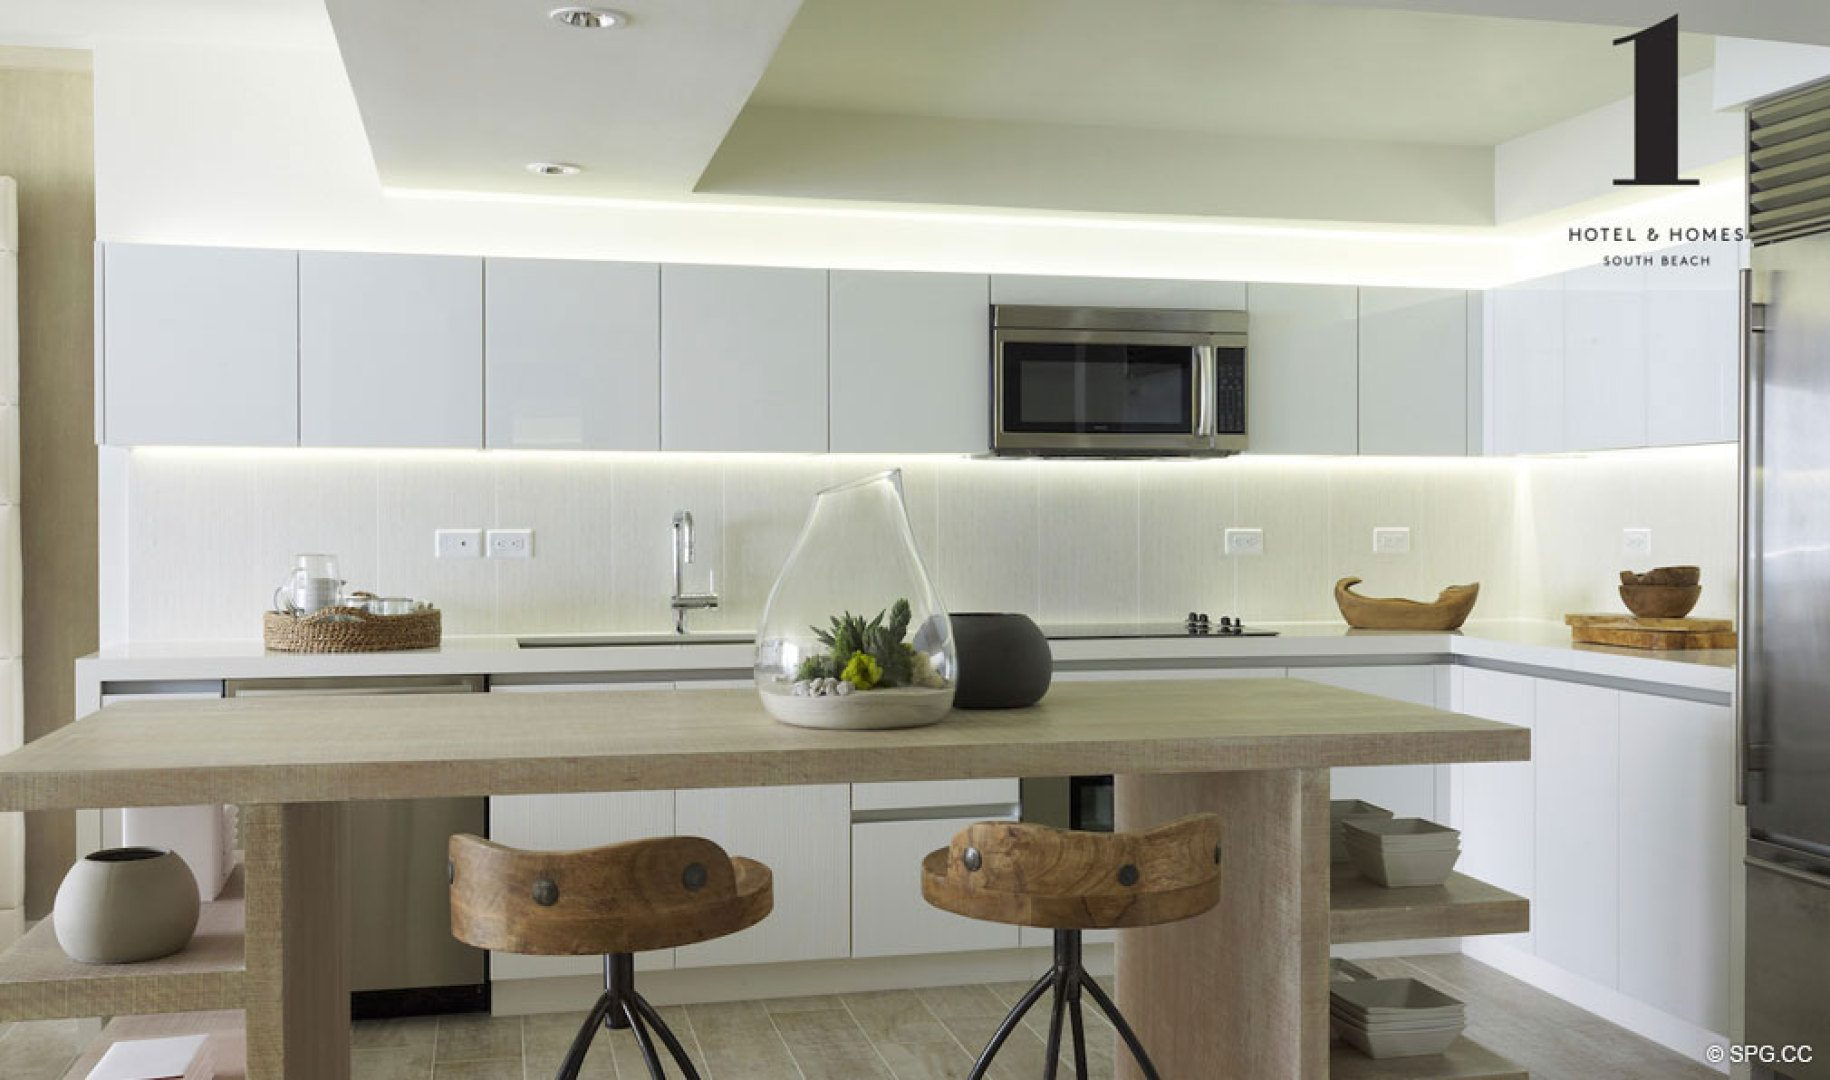 Kitchen at 1 Hotel & Homes South Beach, Luxury Oceanfront Condominiums Located at 2399 Collins Ave, Miami Beach, FL 33139